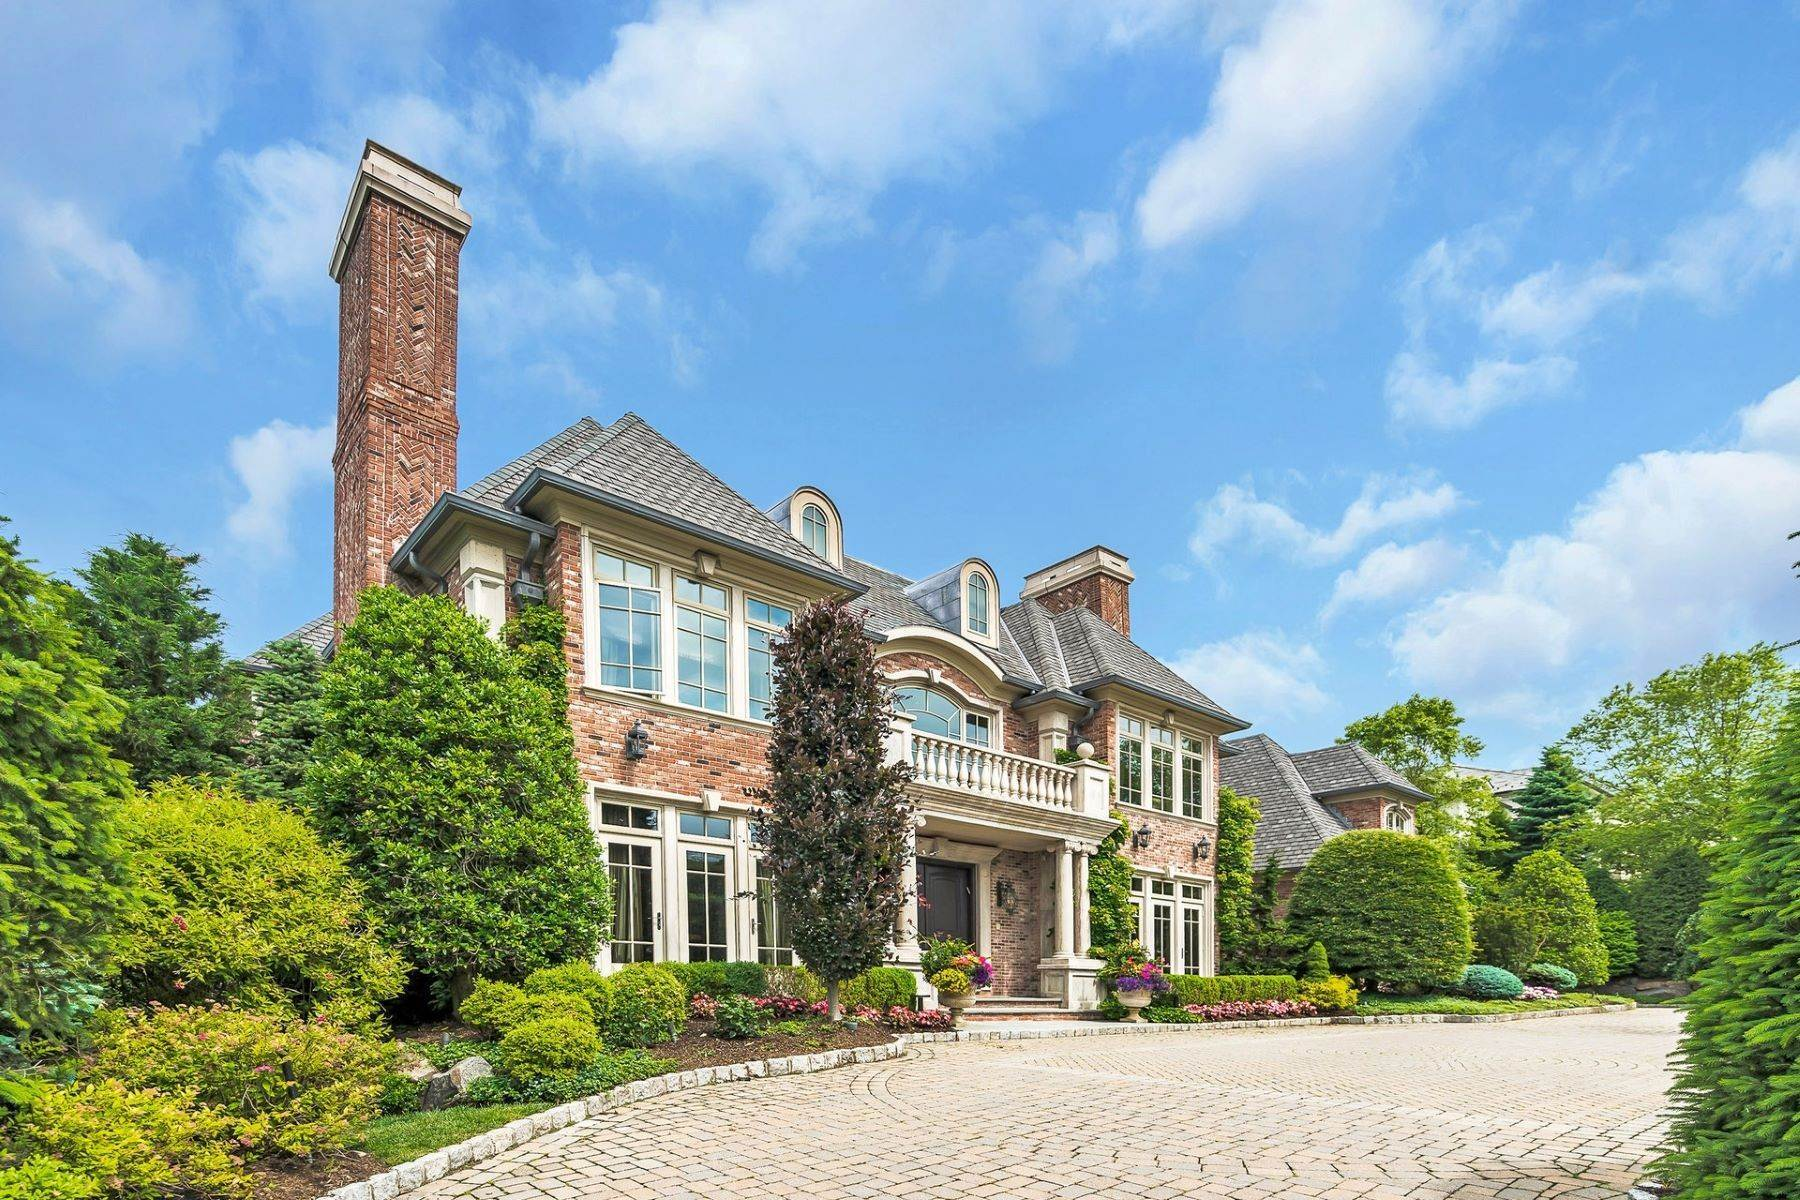 Single Family Homes for Sale at Extraordinary Manor Estate 129 Truman Dr, Cresskill, New Jersey 07626 United States